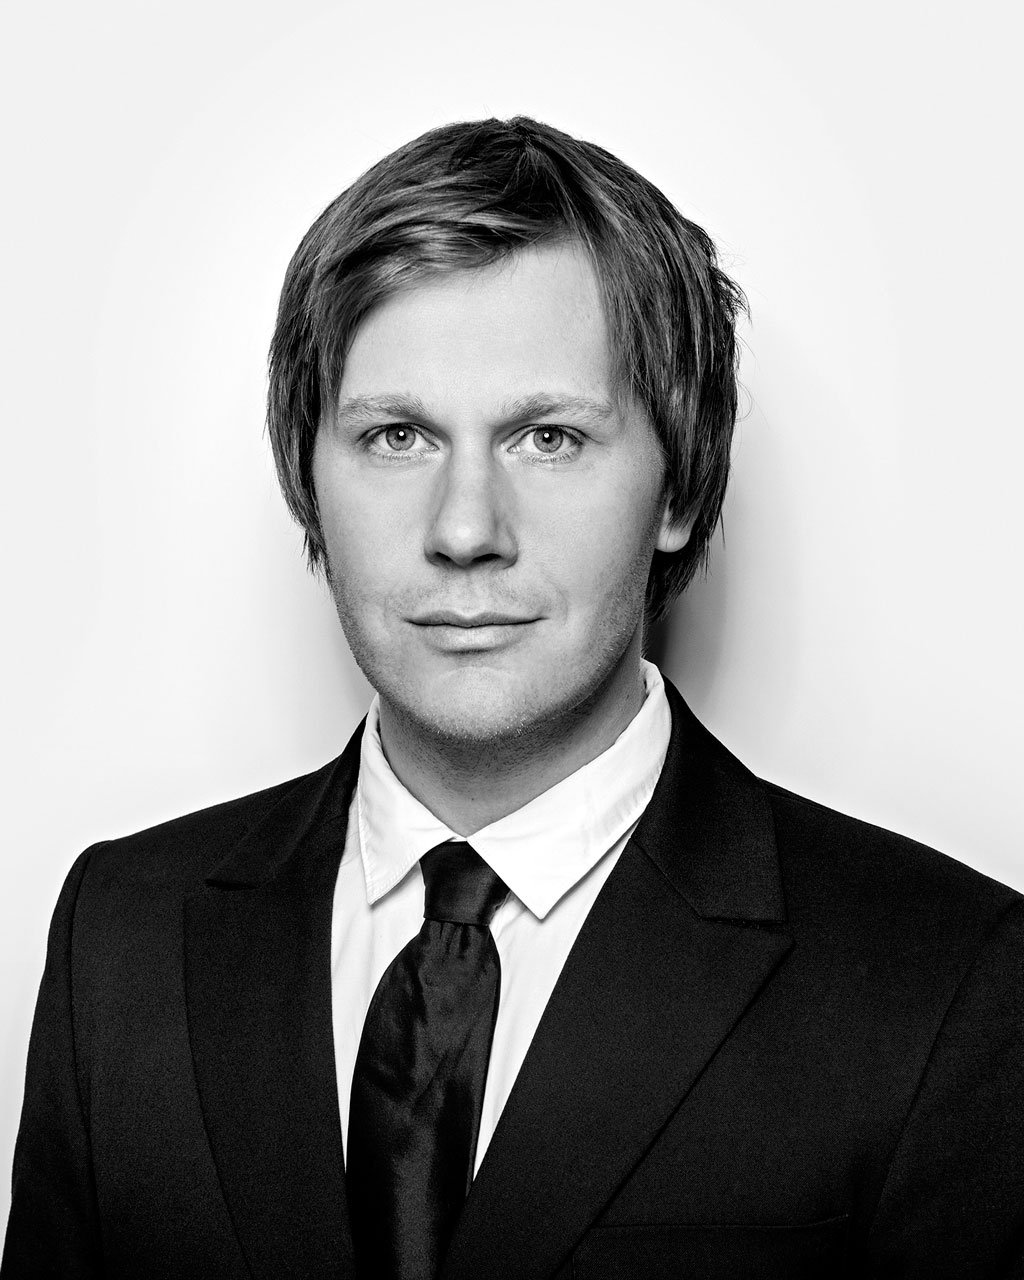 Mats Stenmark - Owner and attorney